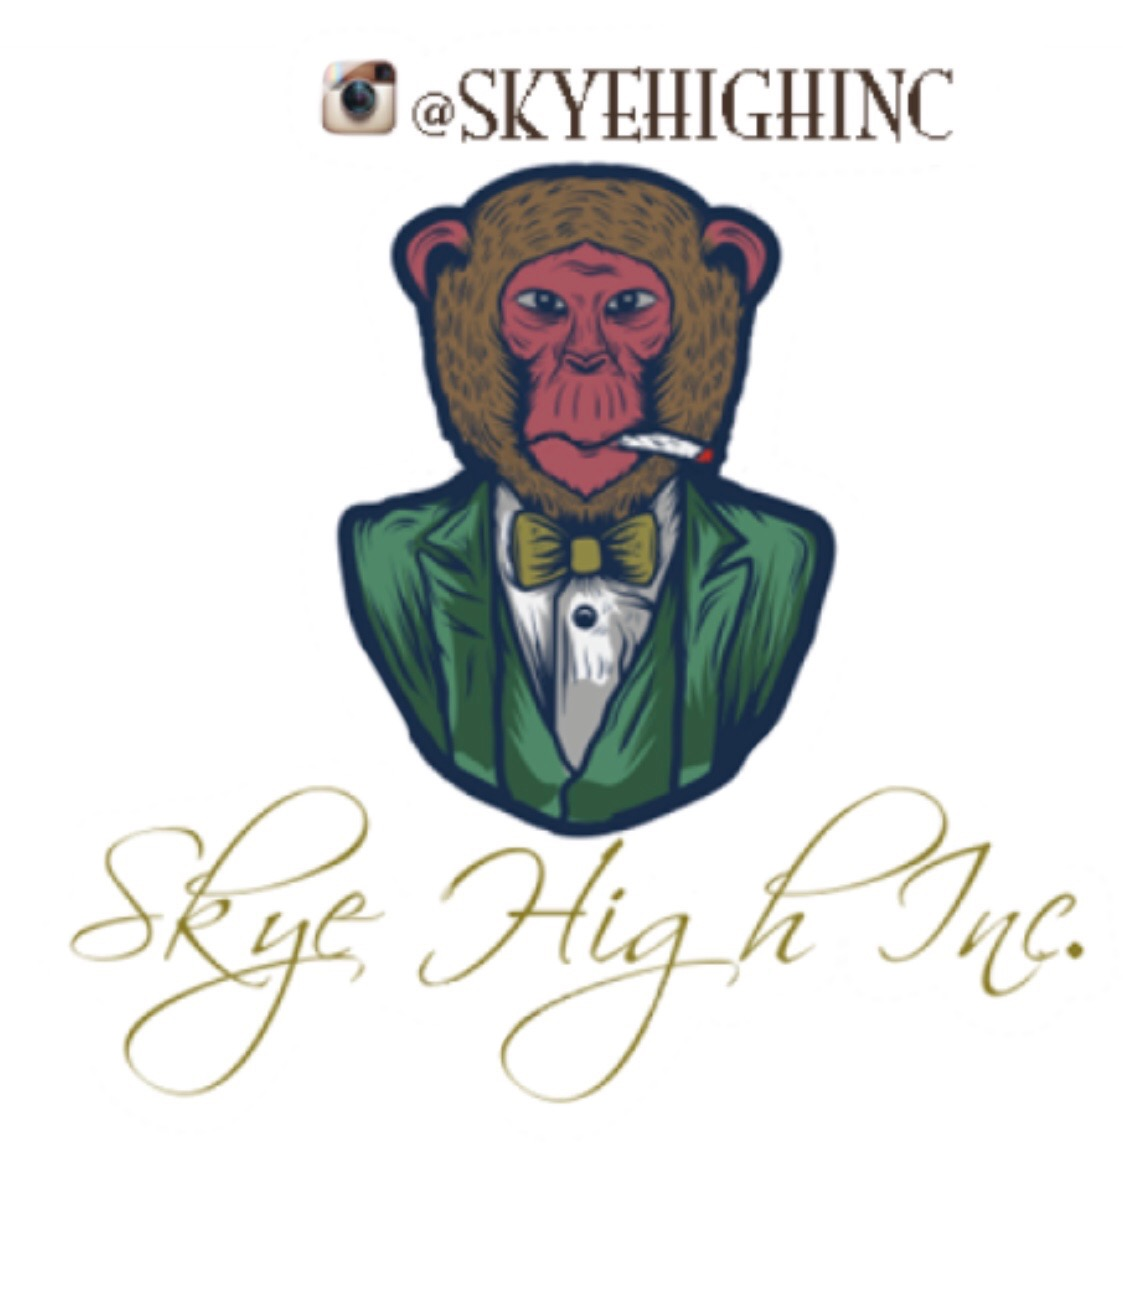 Skye High Inc